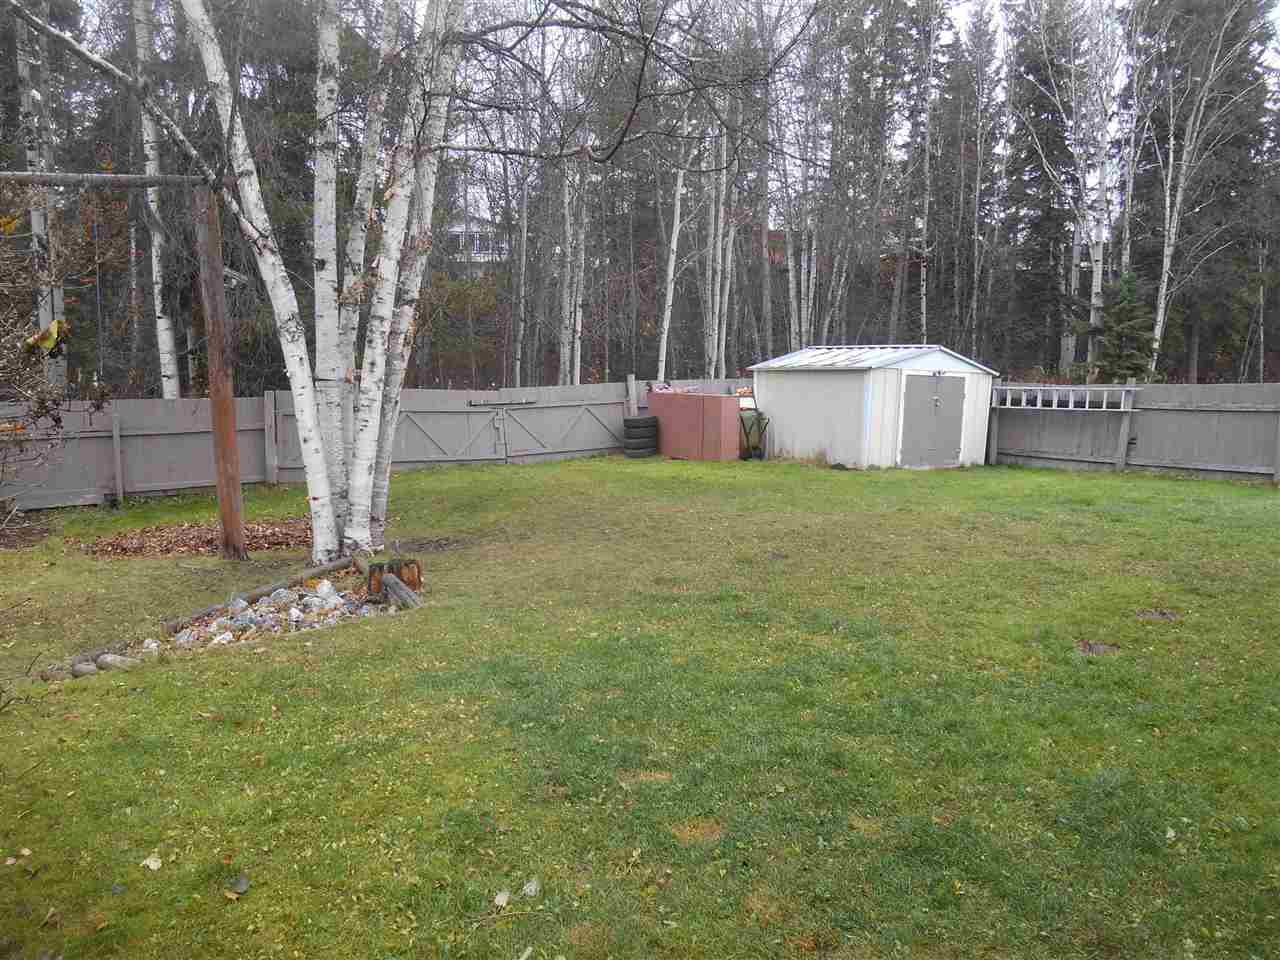 Photo 9: Photos: 1955 GARDEN Drive in Prince George: Seymour House for sale (PG City Central (Zone 72))  : MLS®# R2120742